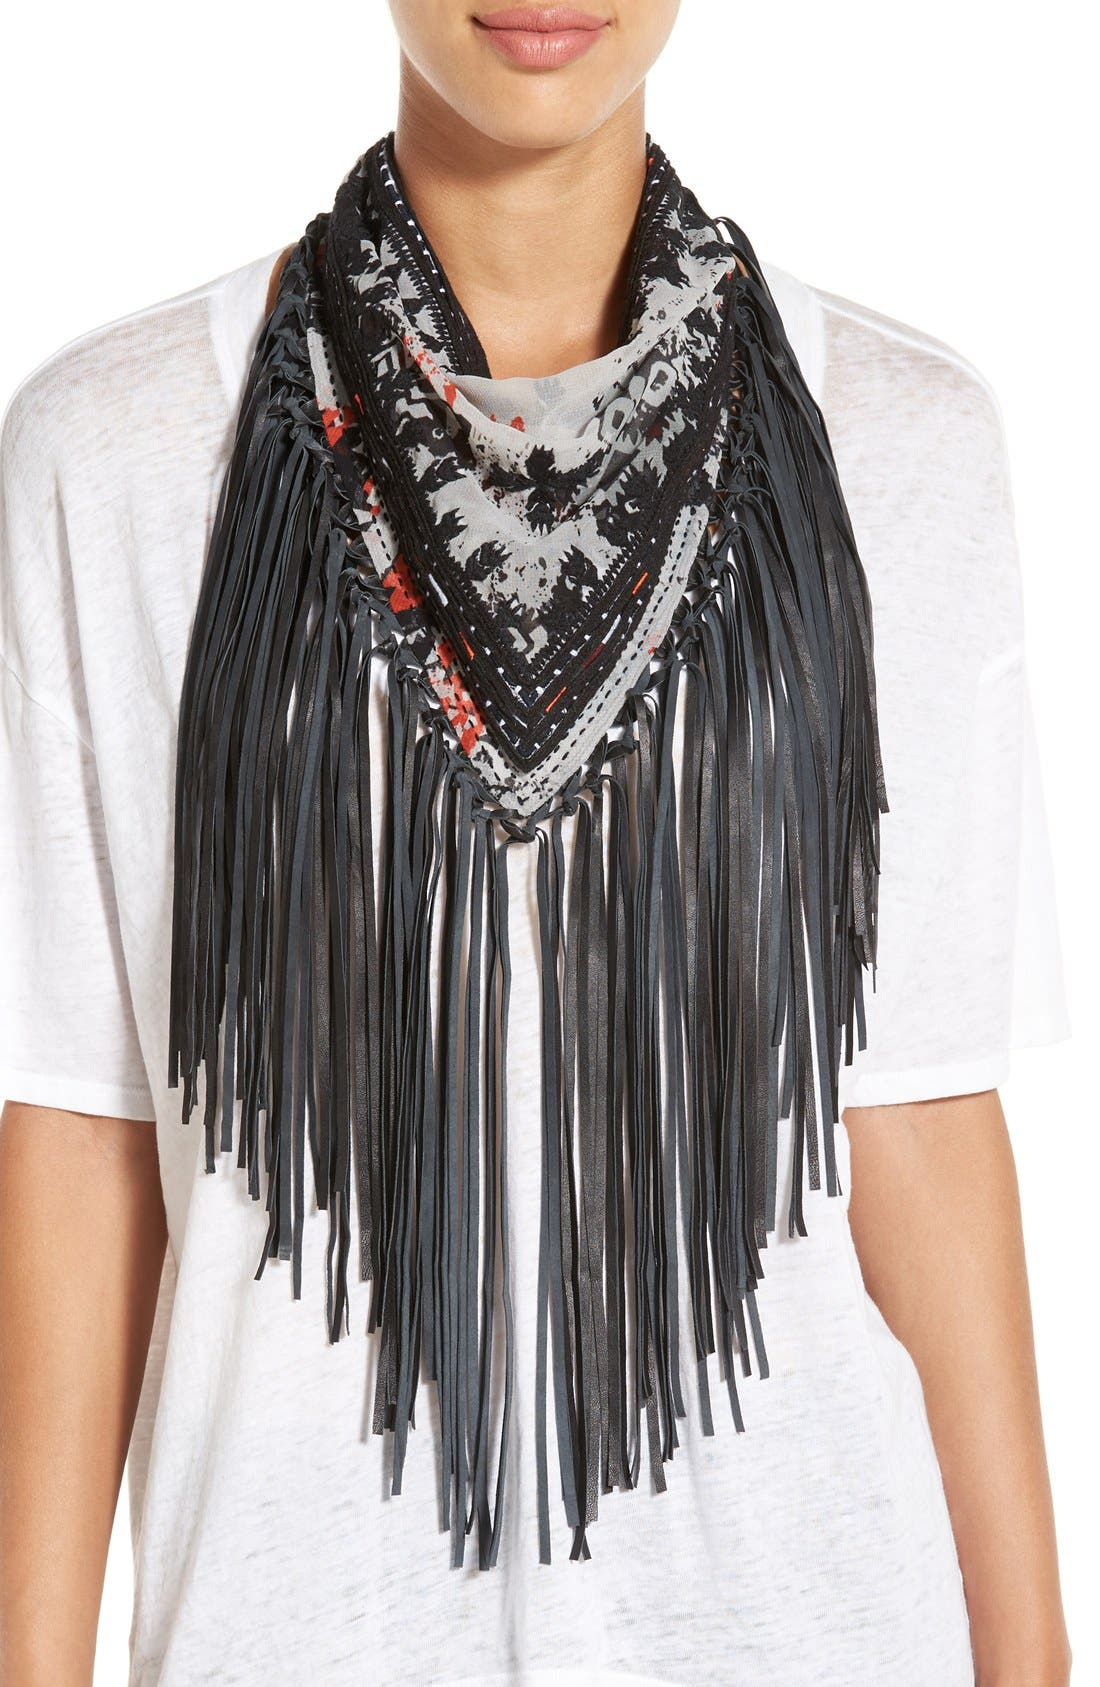 Alternate Image 1 Selected - Steve Madden Leather Fringe Neckerchief